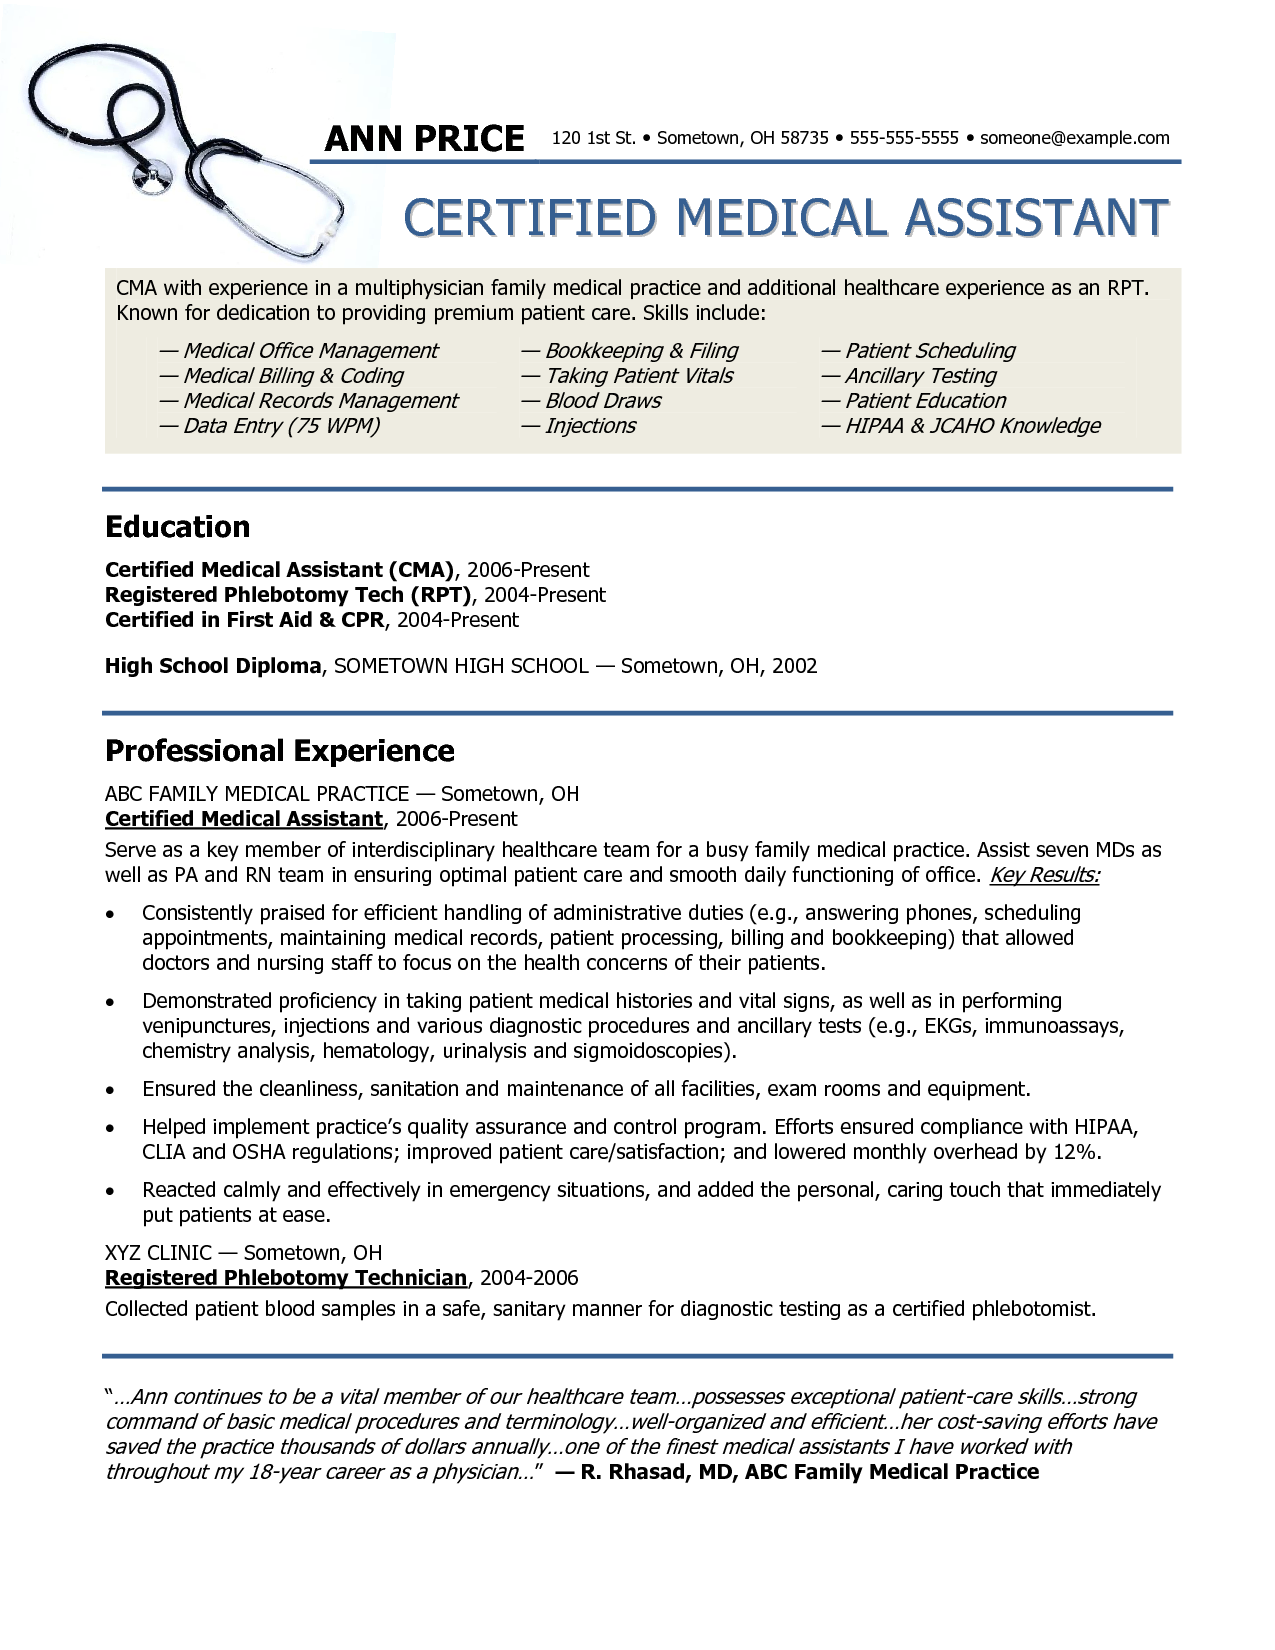 resume examples example of medical assistant resume regular medical assistant